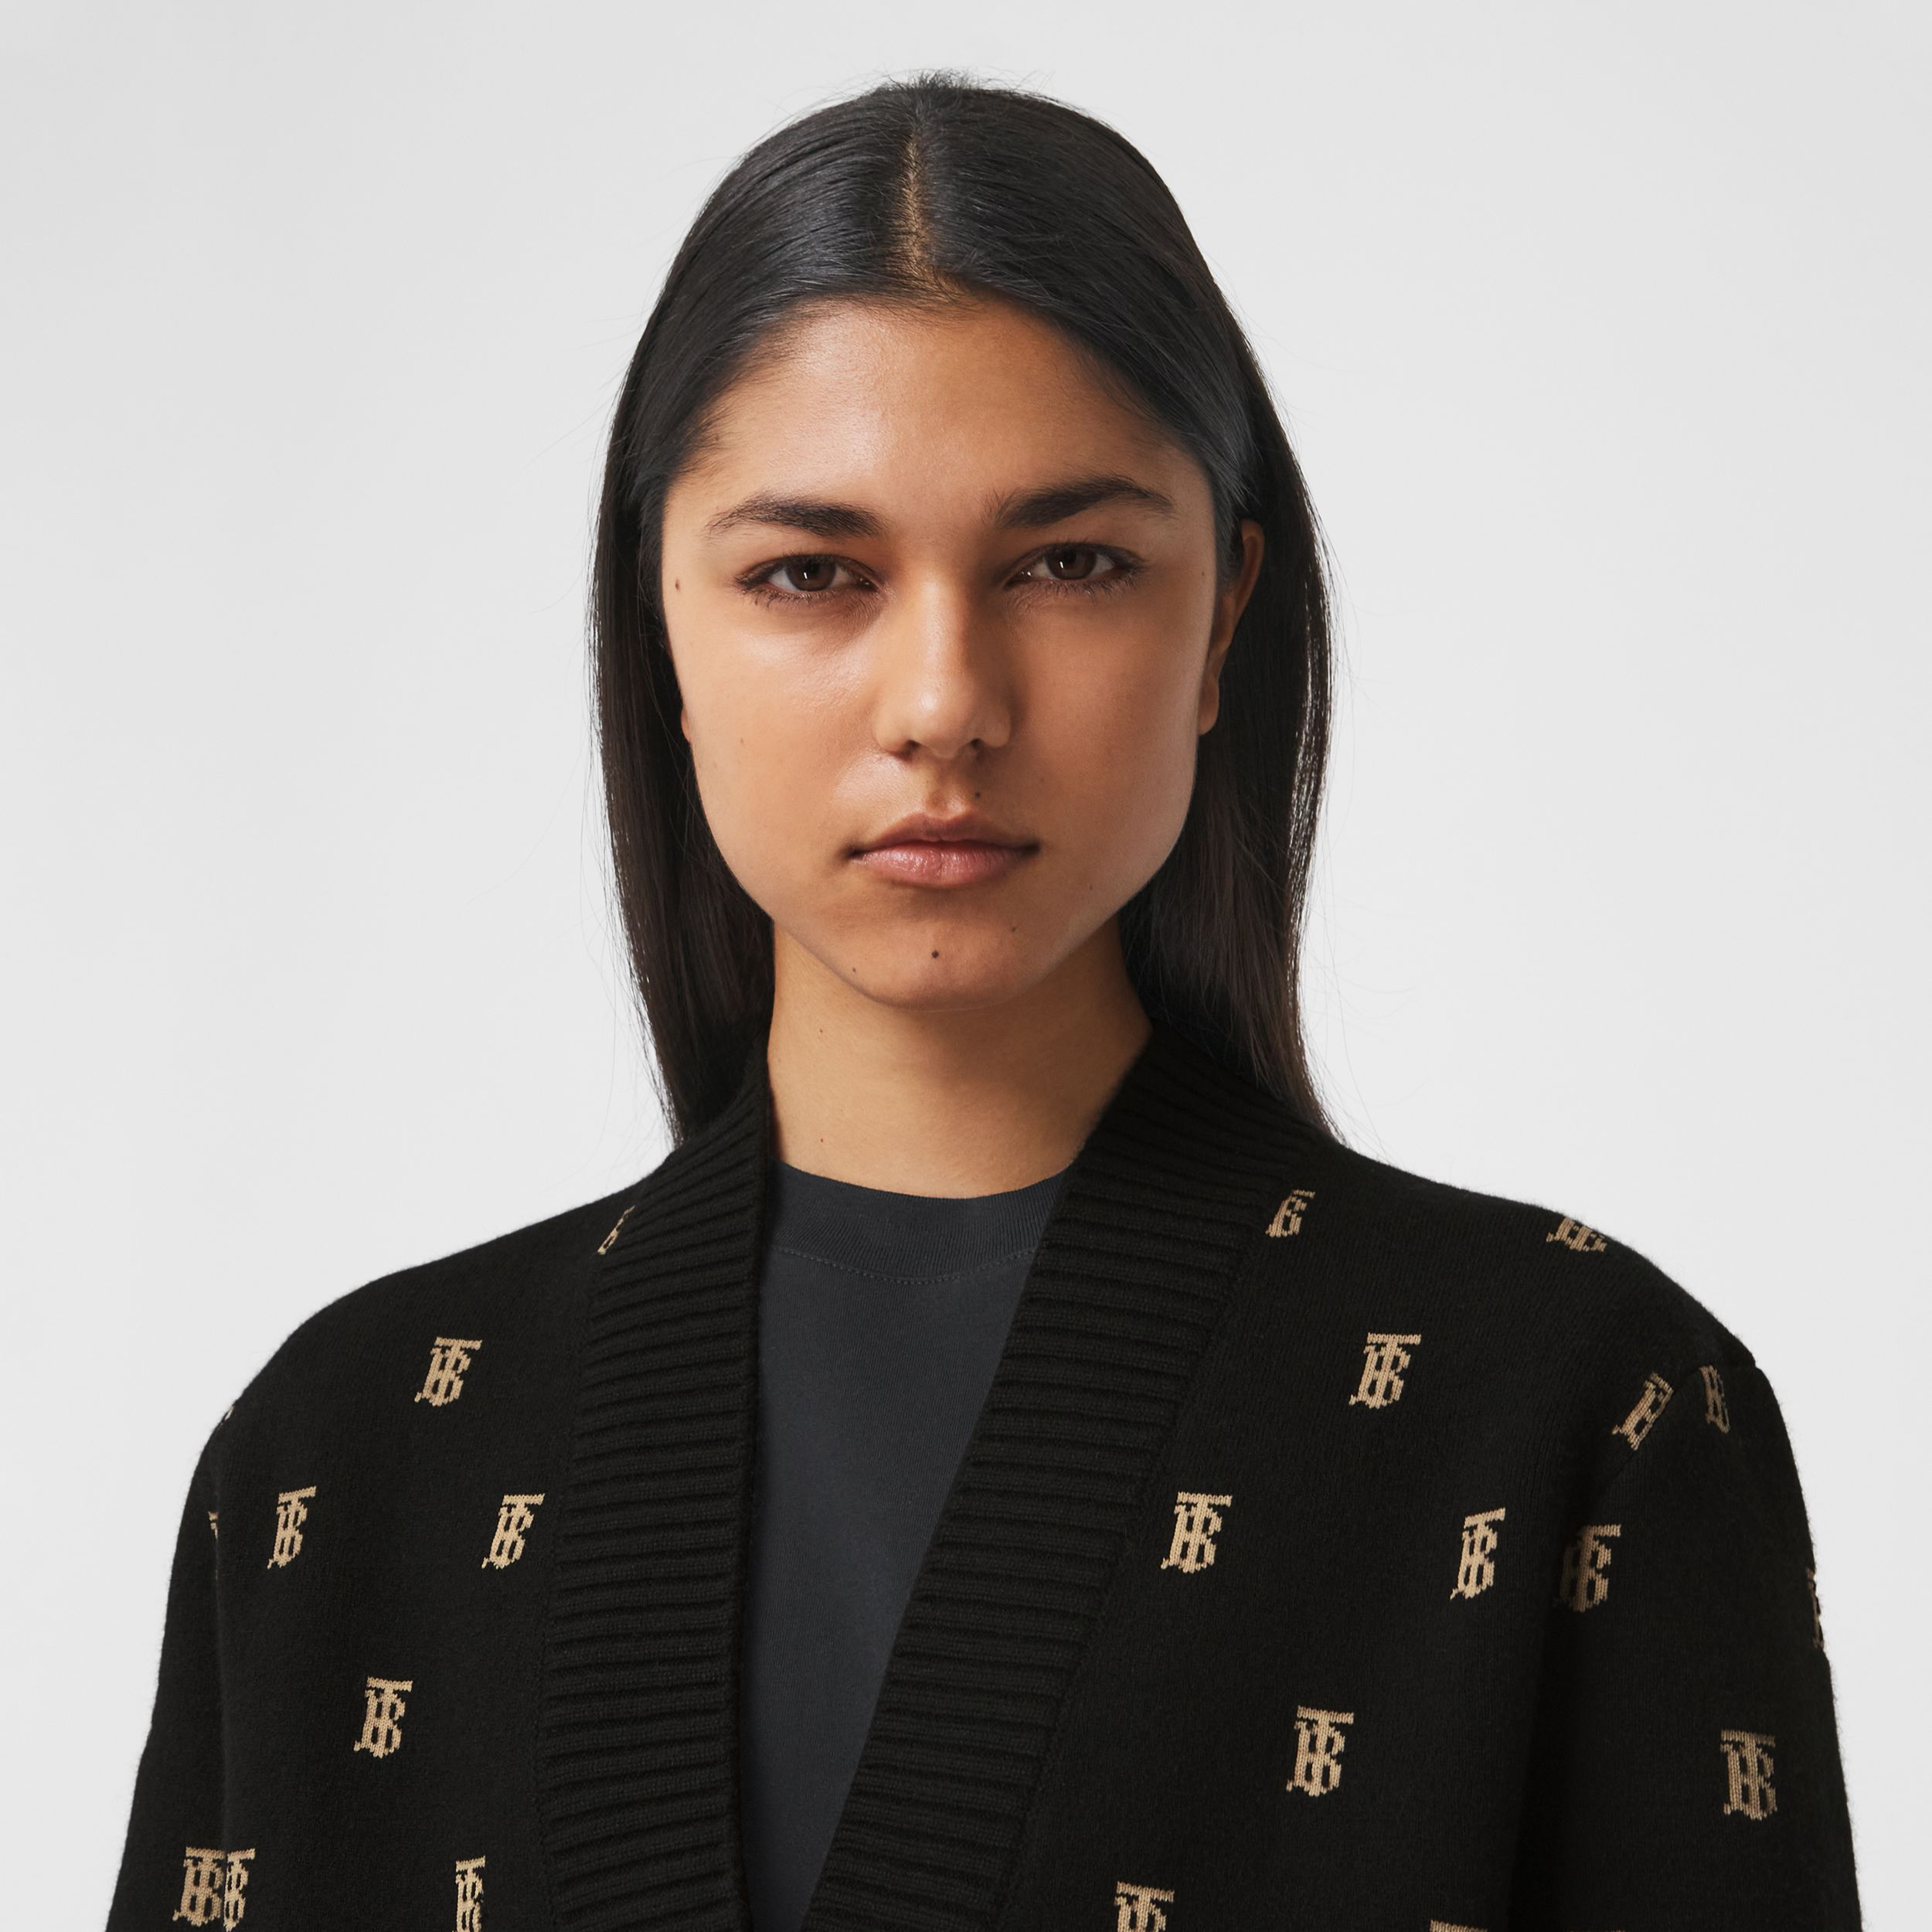 Monogram Wool Cashmere Blend Oversized Cardigan in Black - Women | Burberry - 2